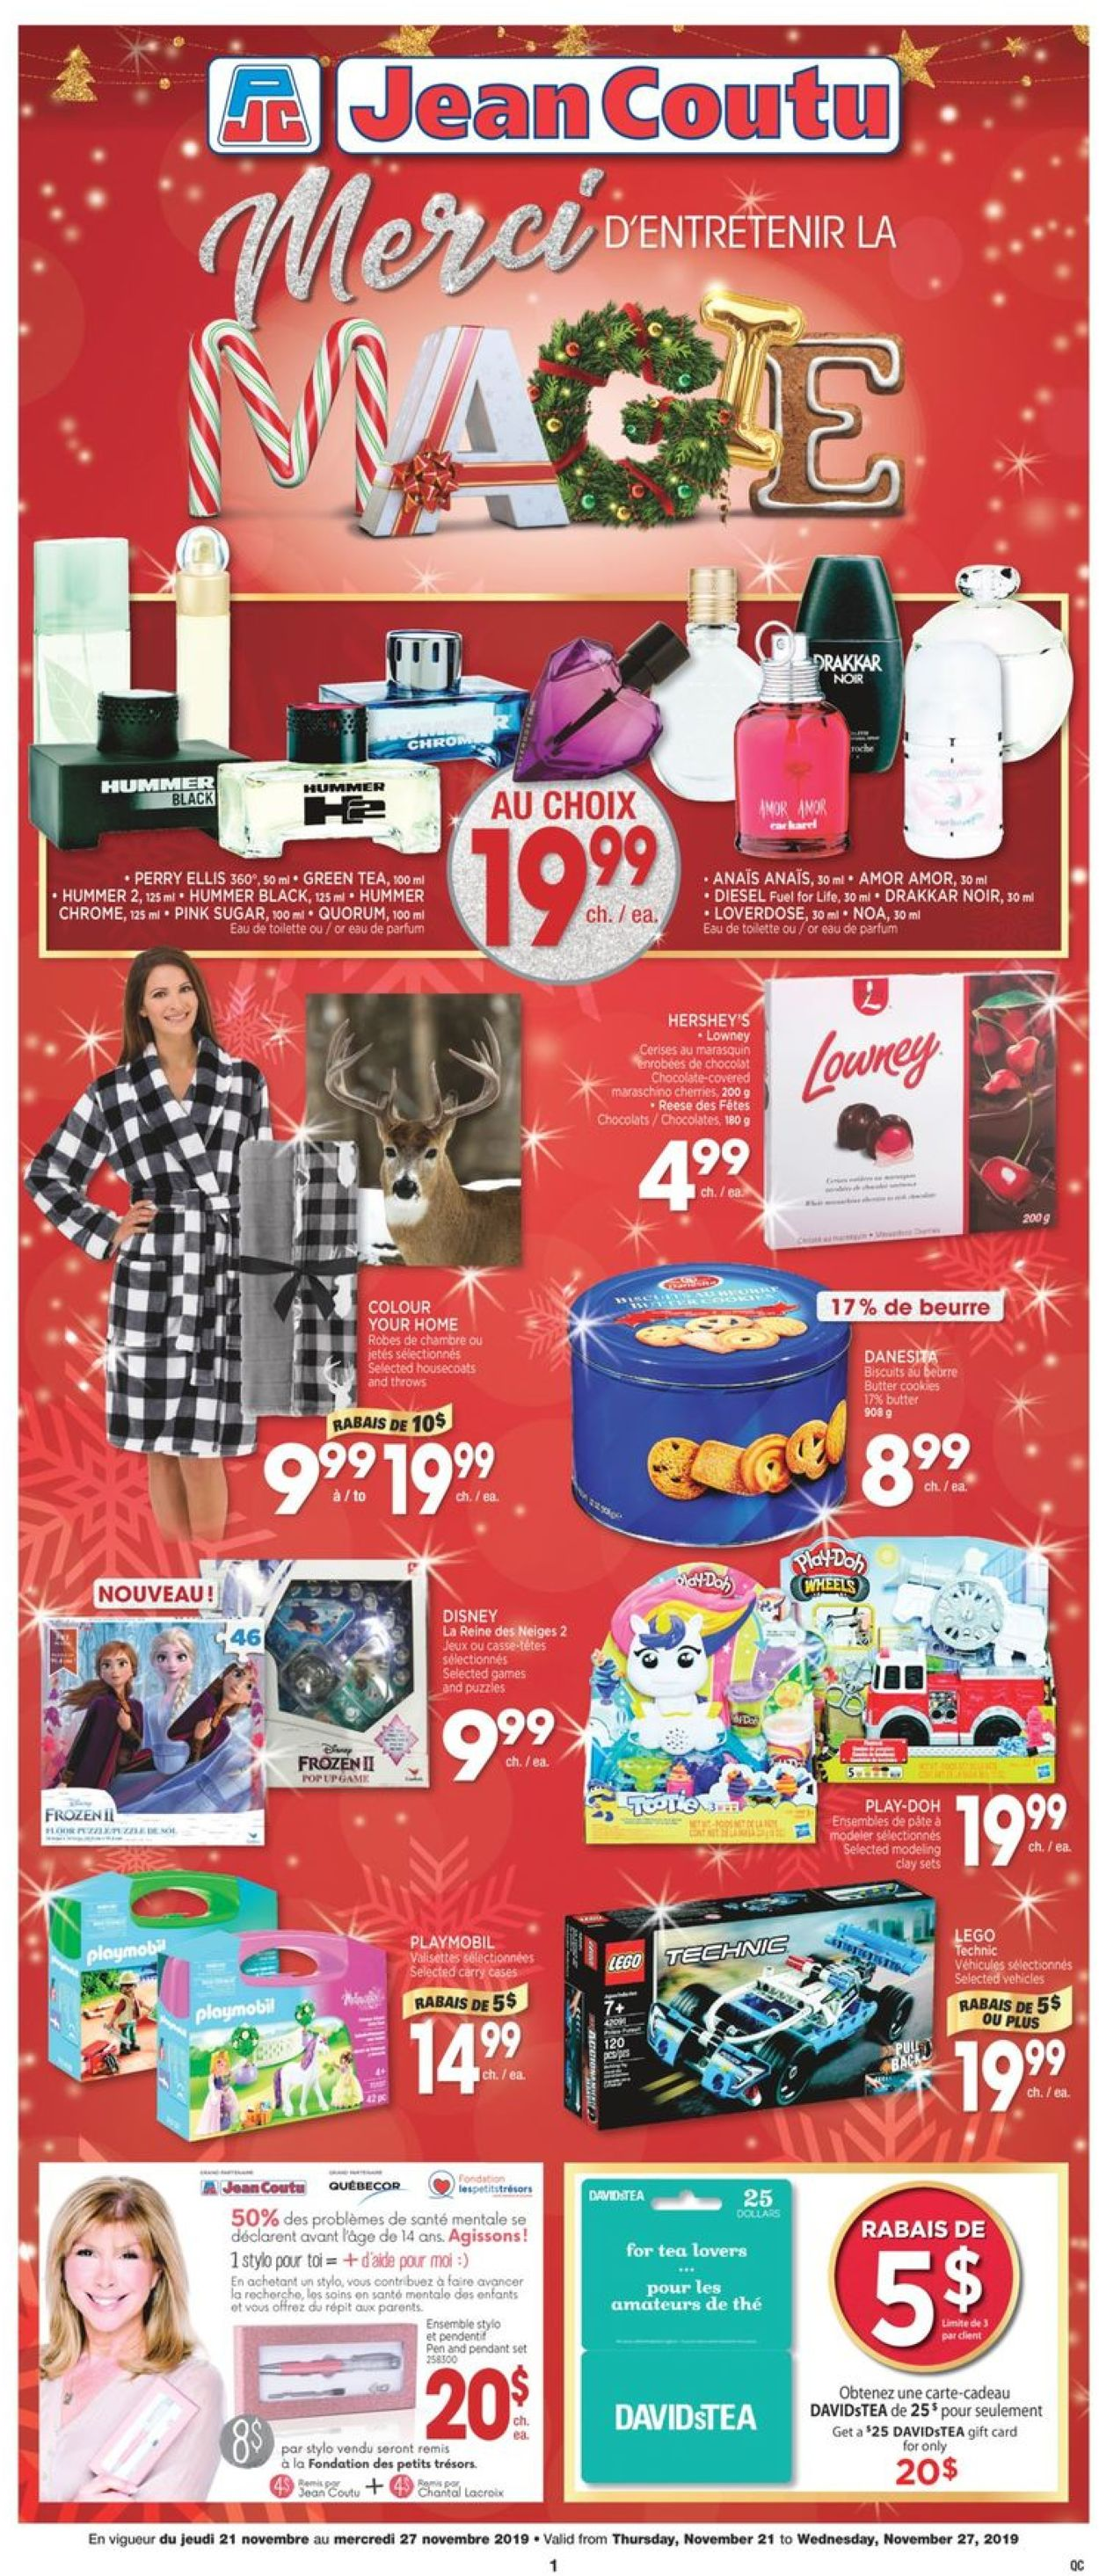 Jean Coutu Holiday Gifts Ideas 2019 Flyer - 11/21-11/27/2019